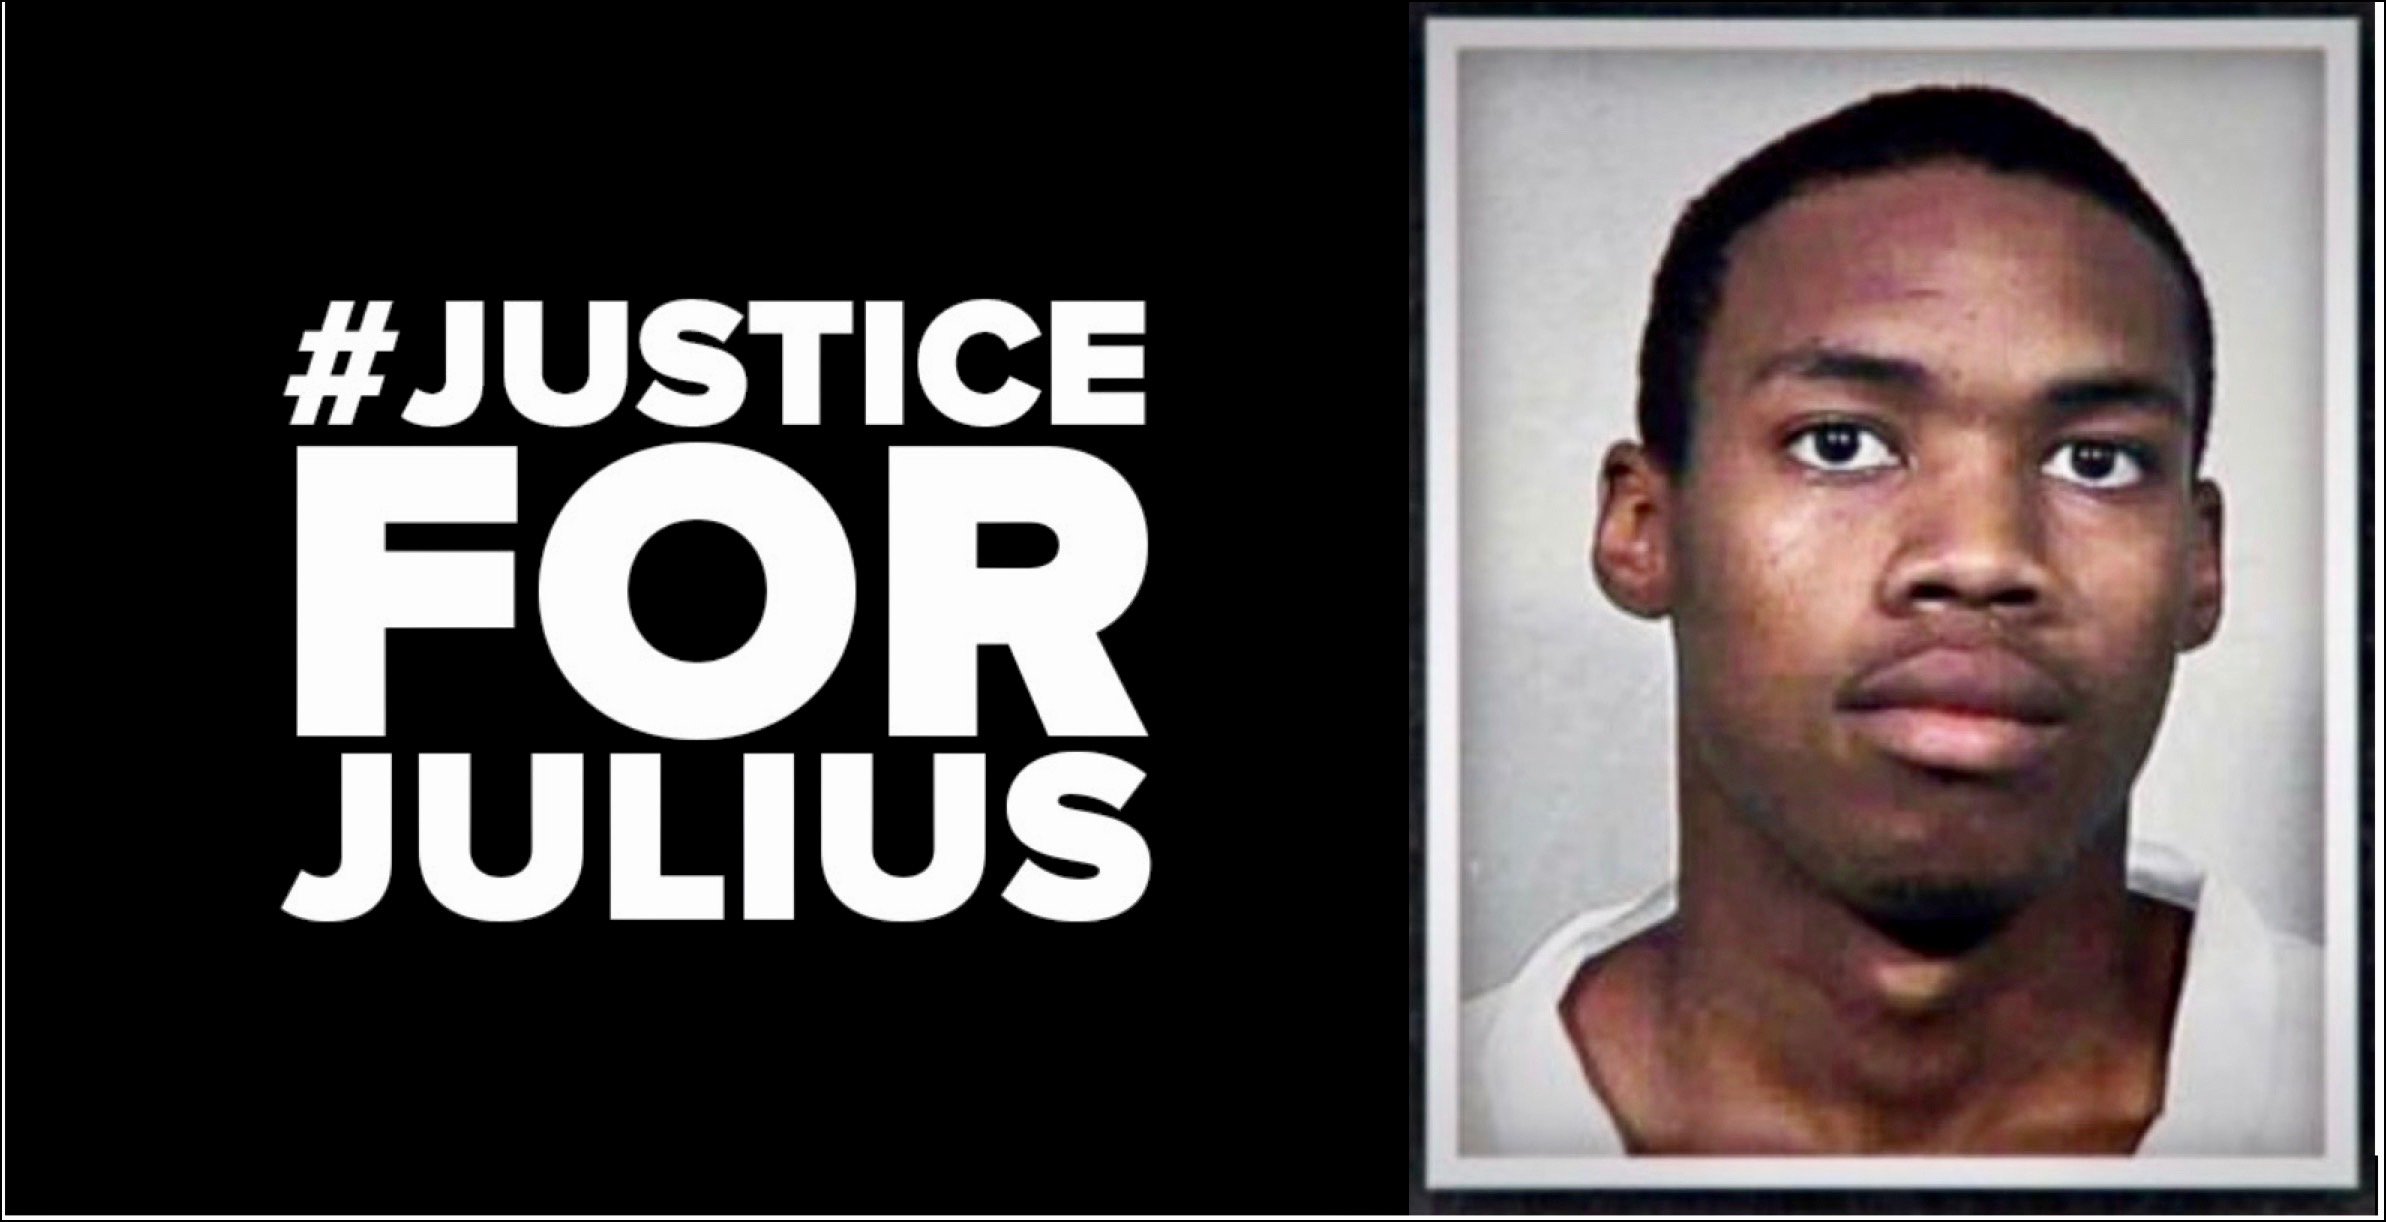 Justice for Julius with photo 2Aug2020 8